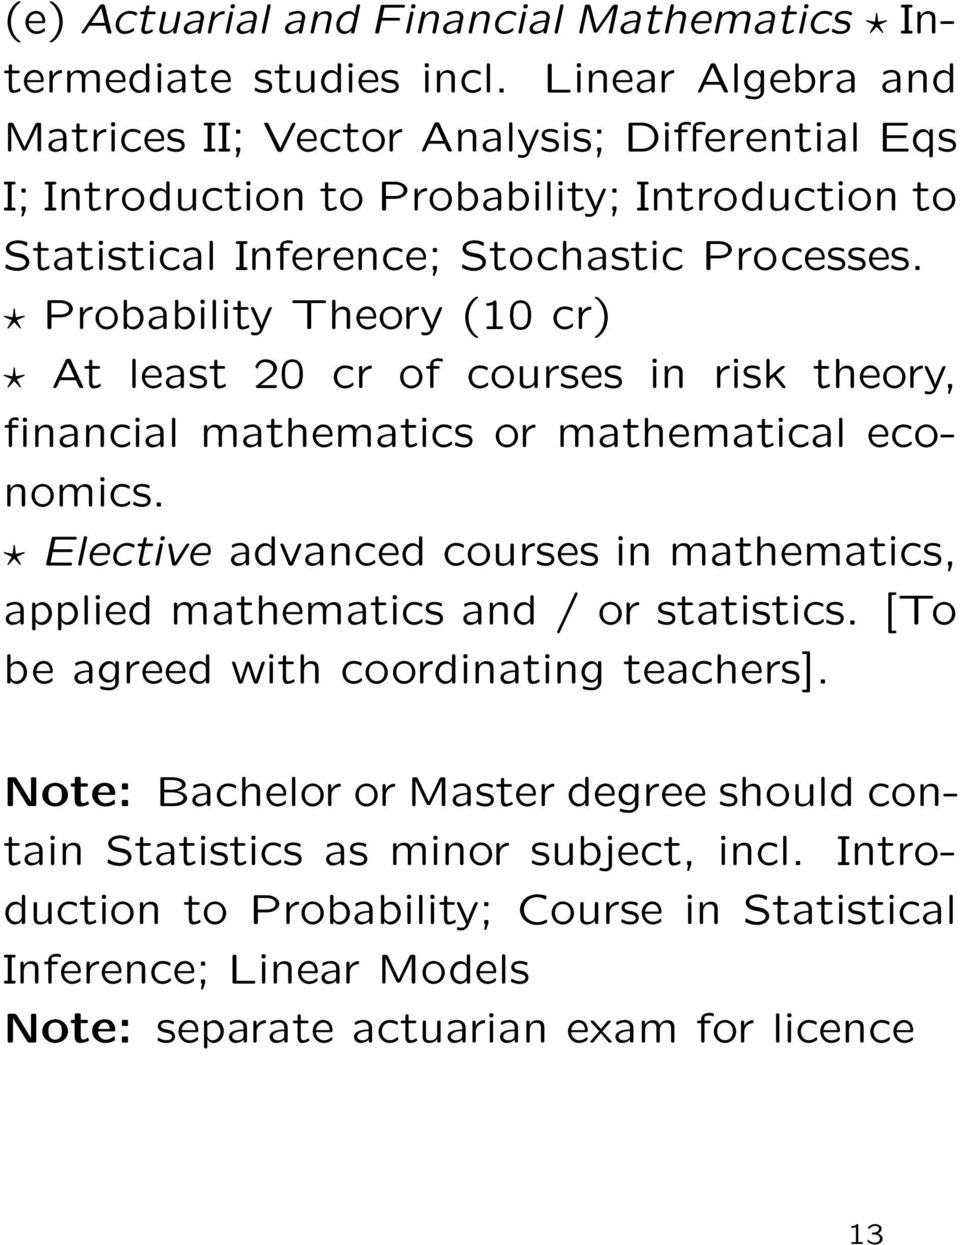 Probability Theory (10 cr) At least 20 cr of courses in risk theory, financial mathematics or mathematical economics.